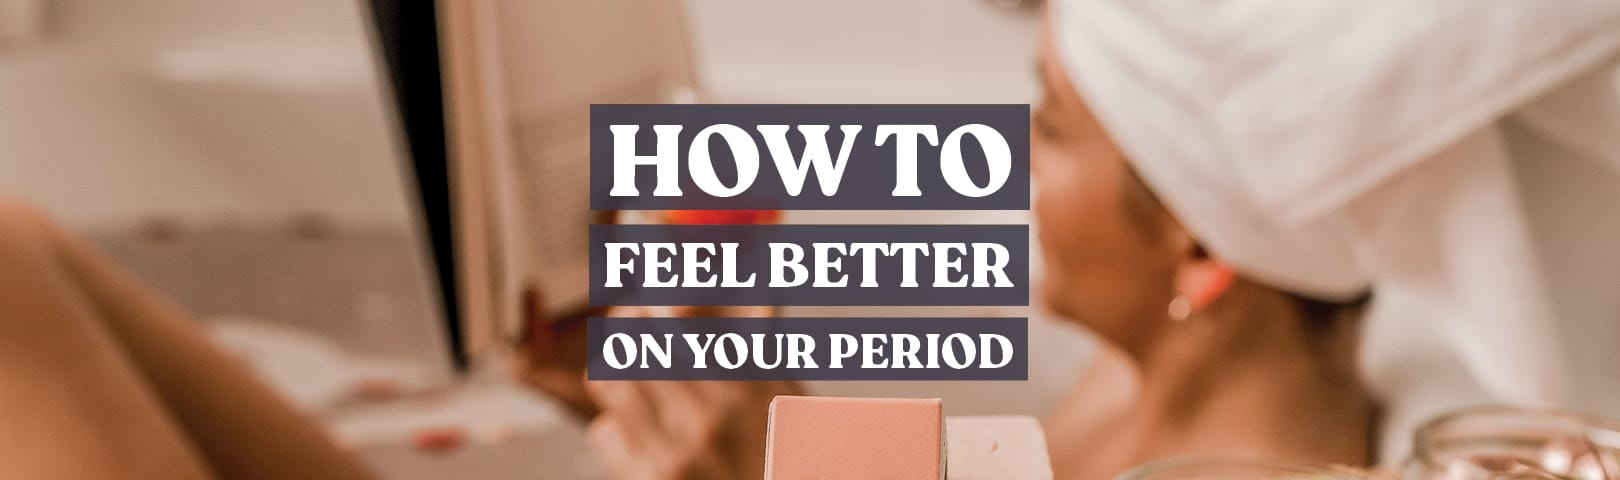 how to feel better on your period